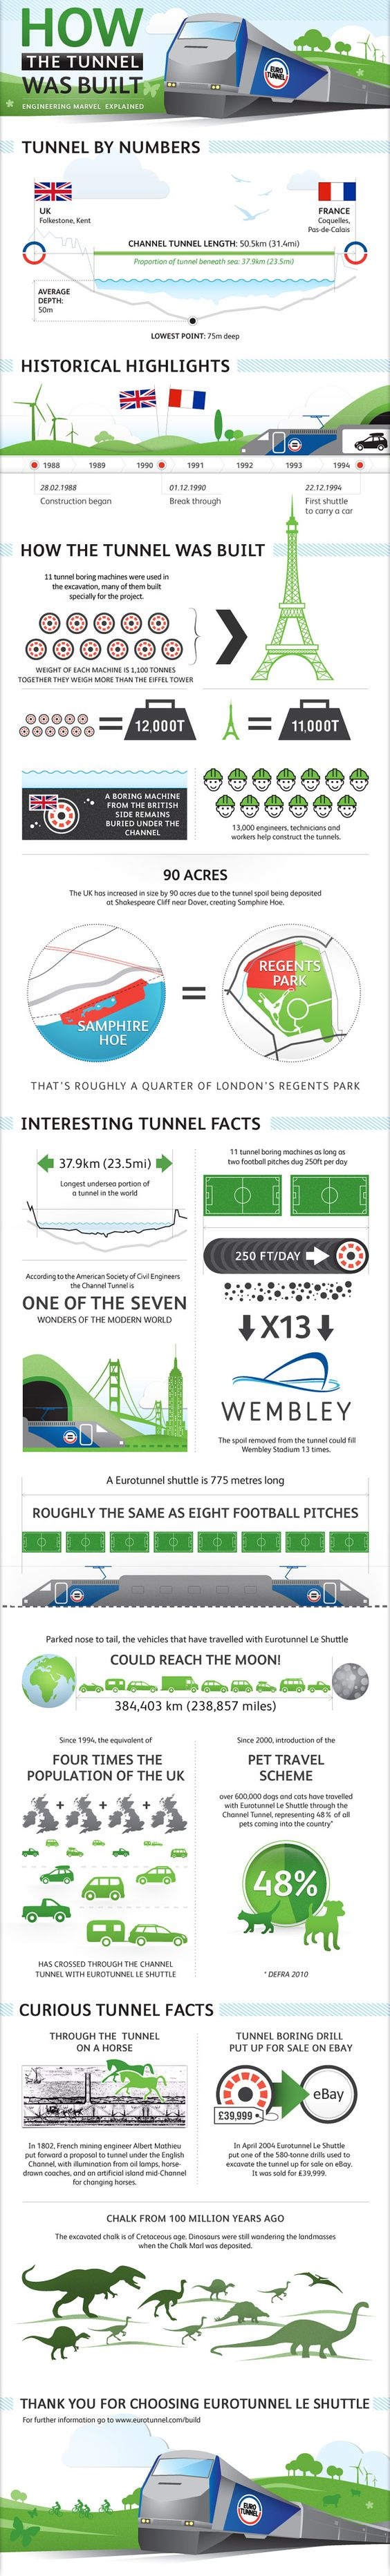 How the Channel Tunnel was Built: